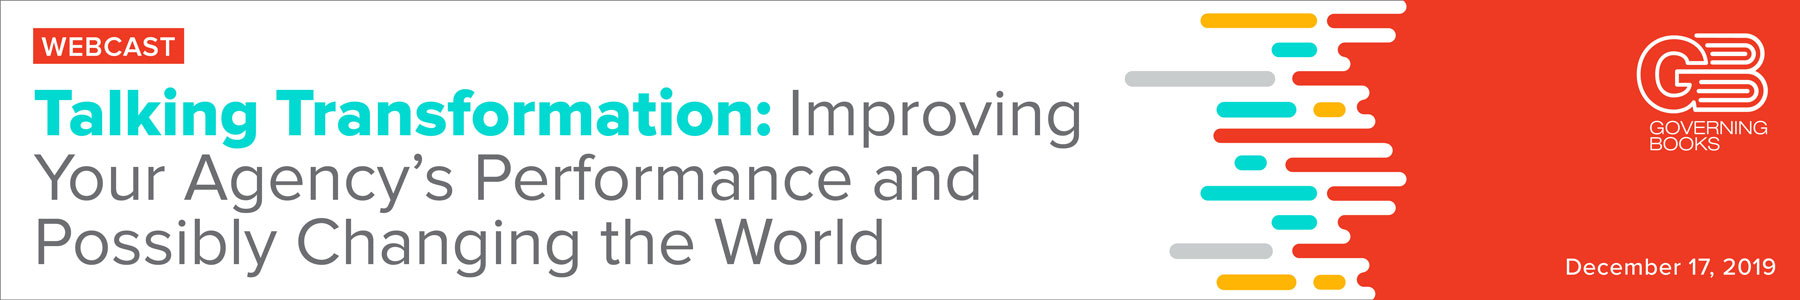 Talking Transformation: Improving Your Agency's Performance and Possibly Changing the World